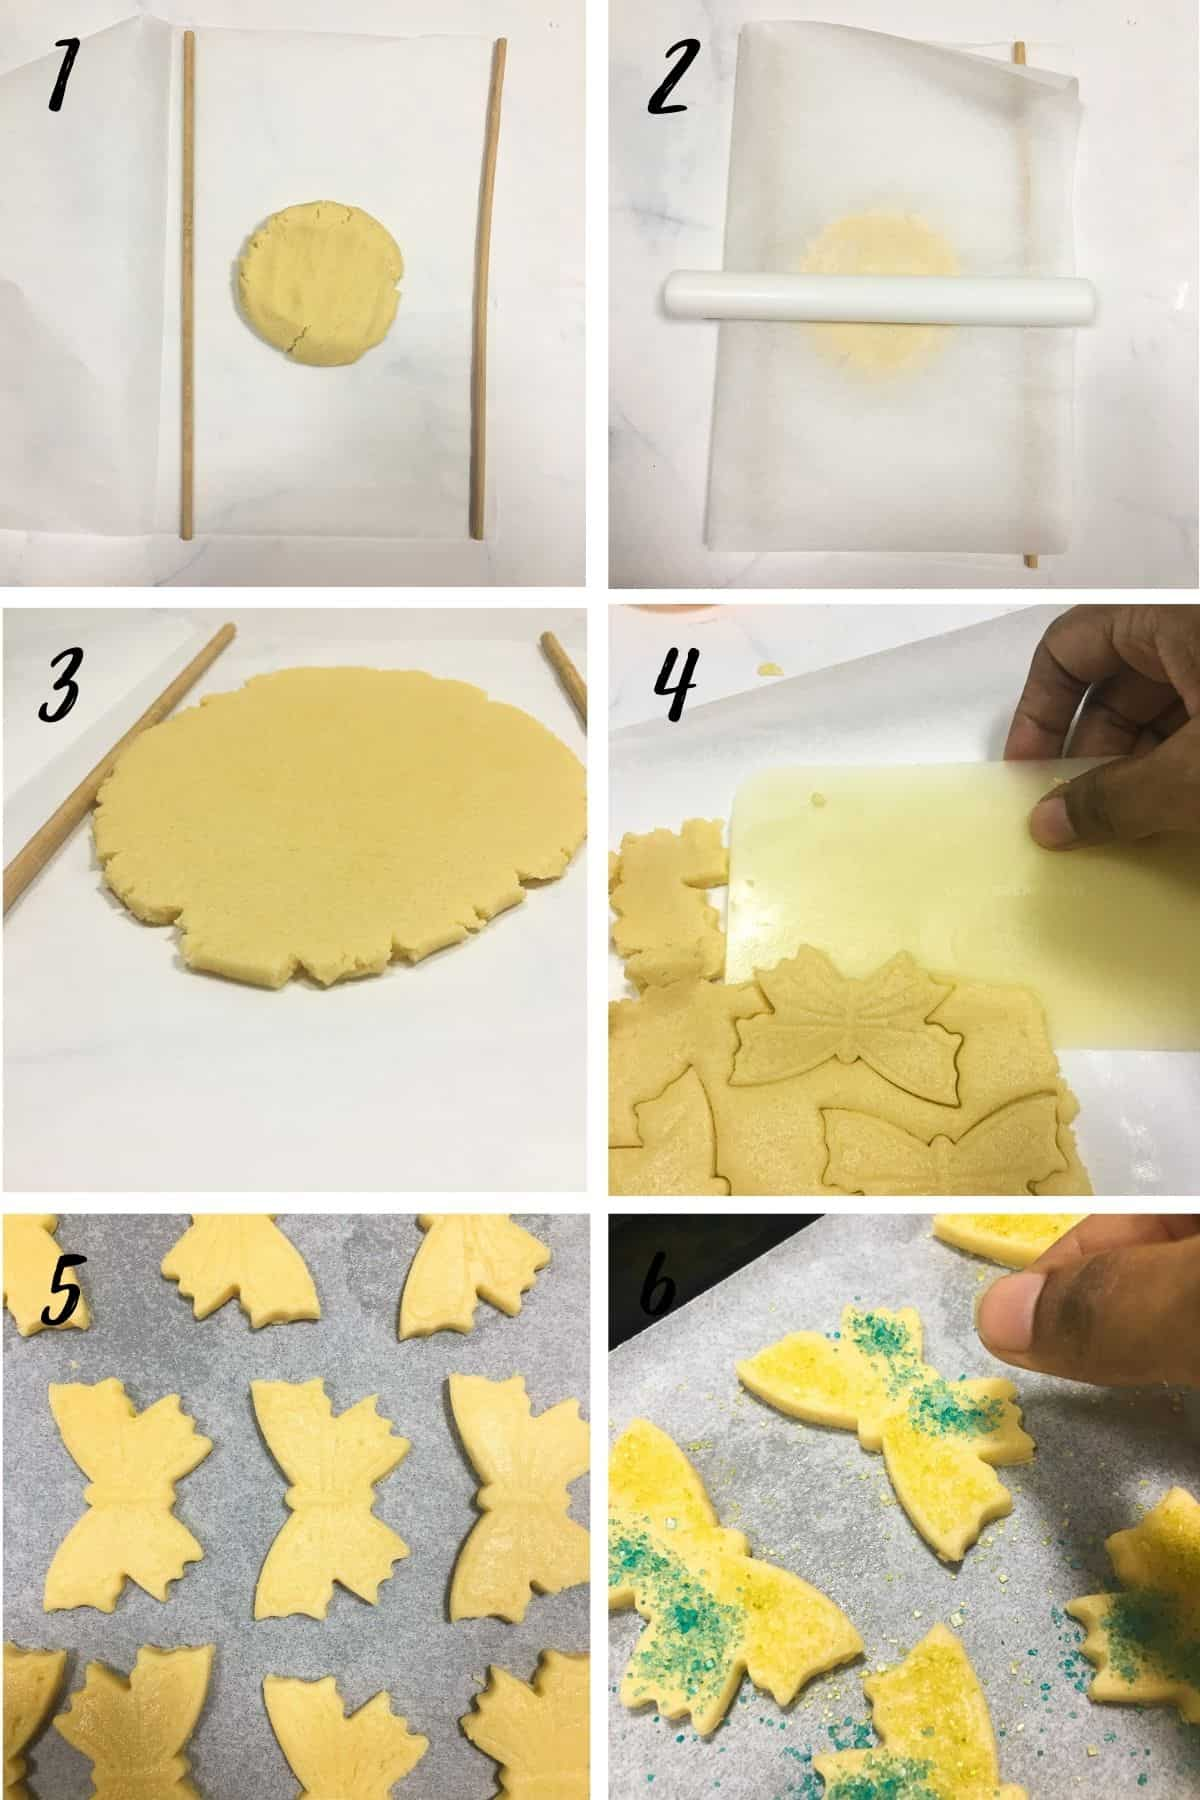 A poster of 4 images showing how to roll dough between 2 parchment sheets and cutting them out with a butterfly cutter